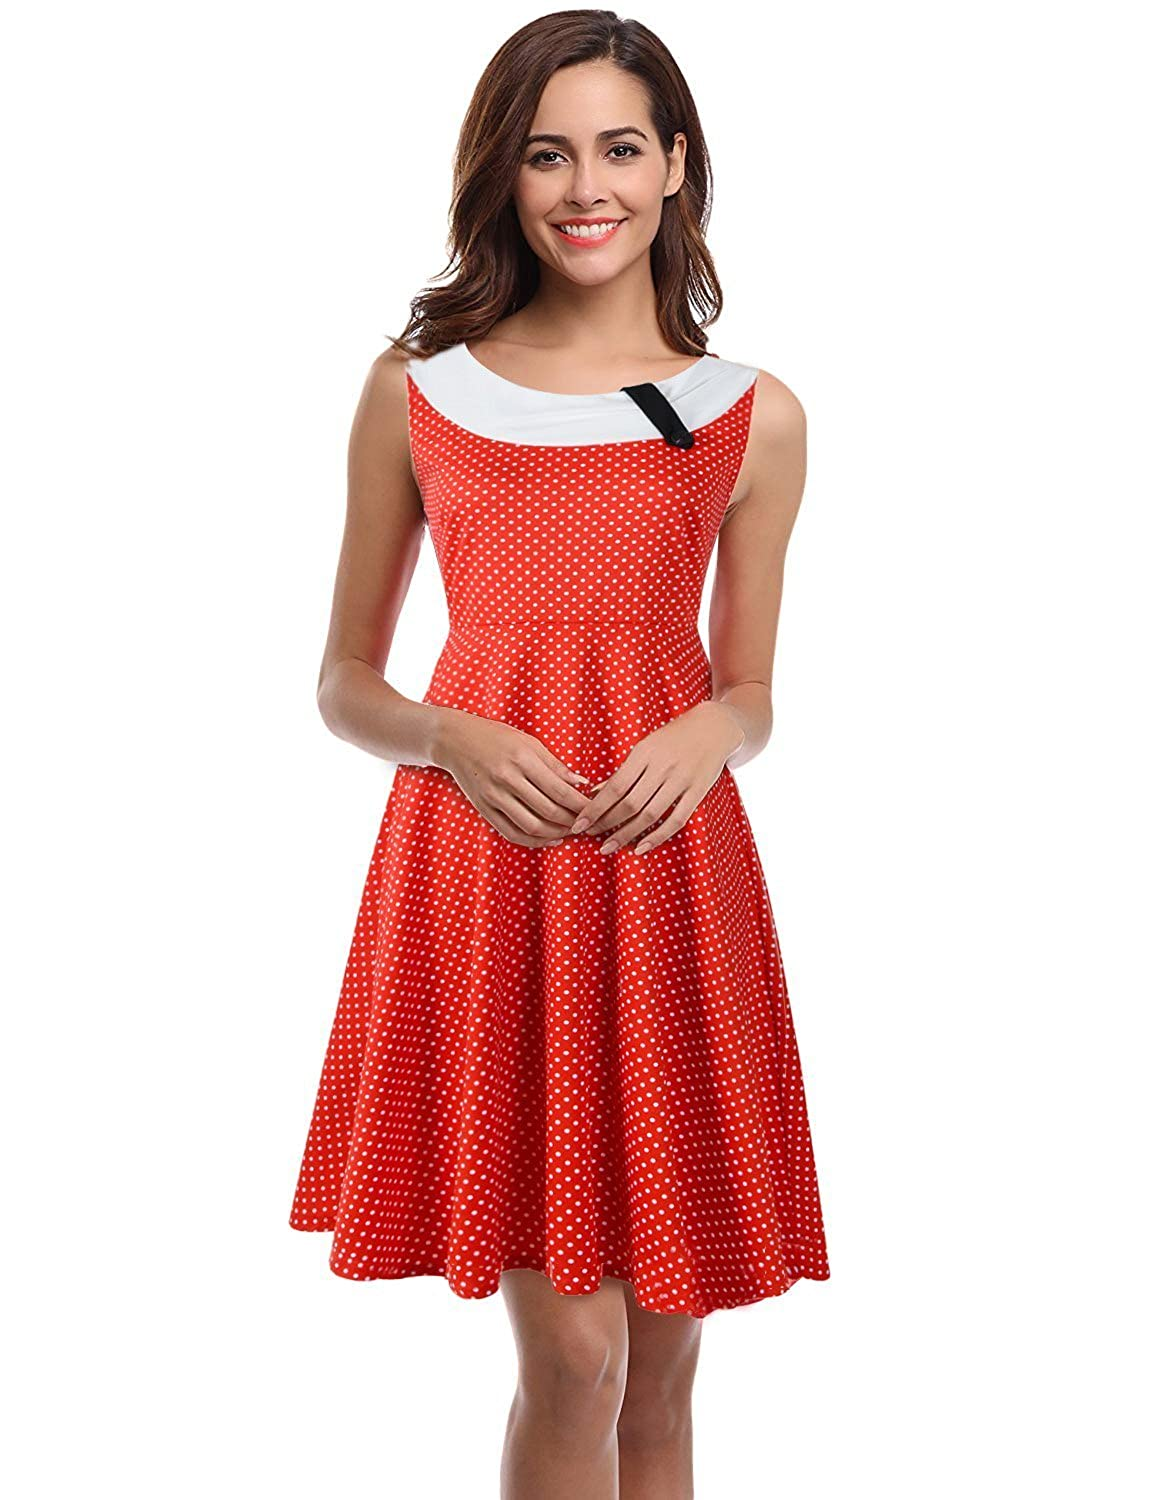 db6a47e0577f Top 10 wholesale 1950s Dresses Red - Chinabrands.com